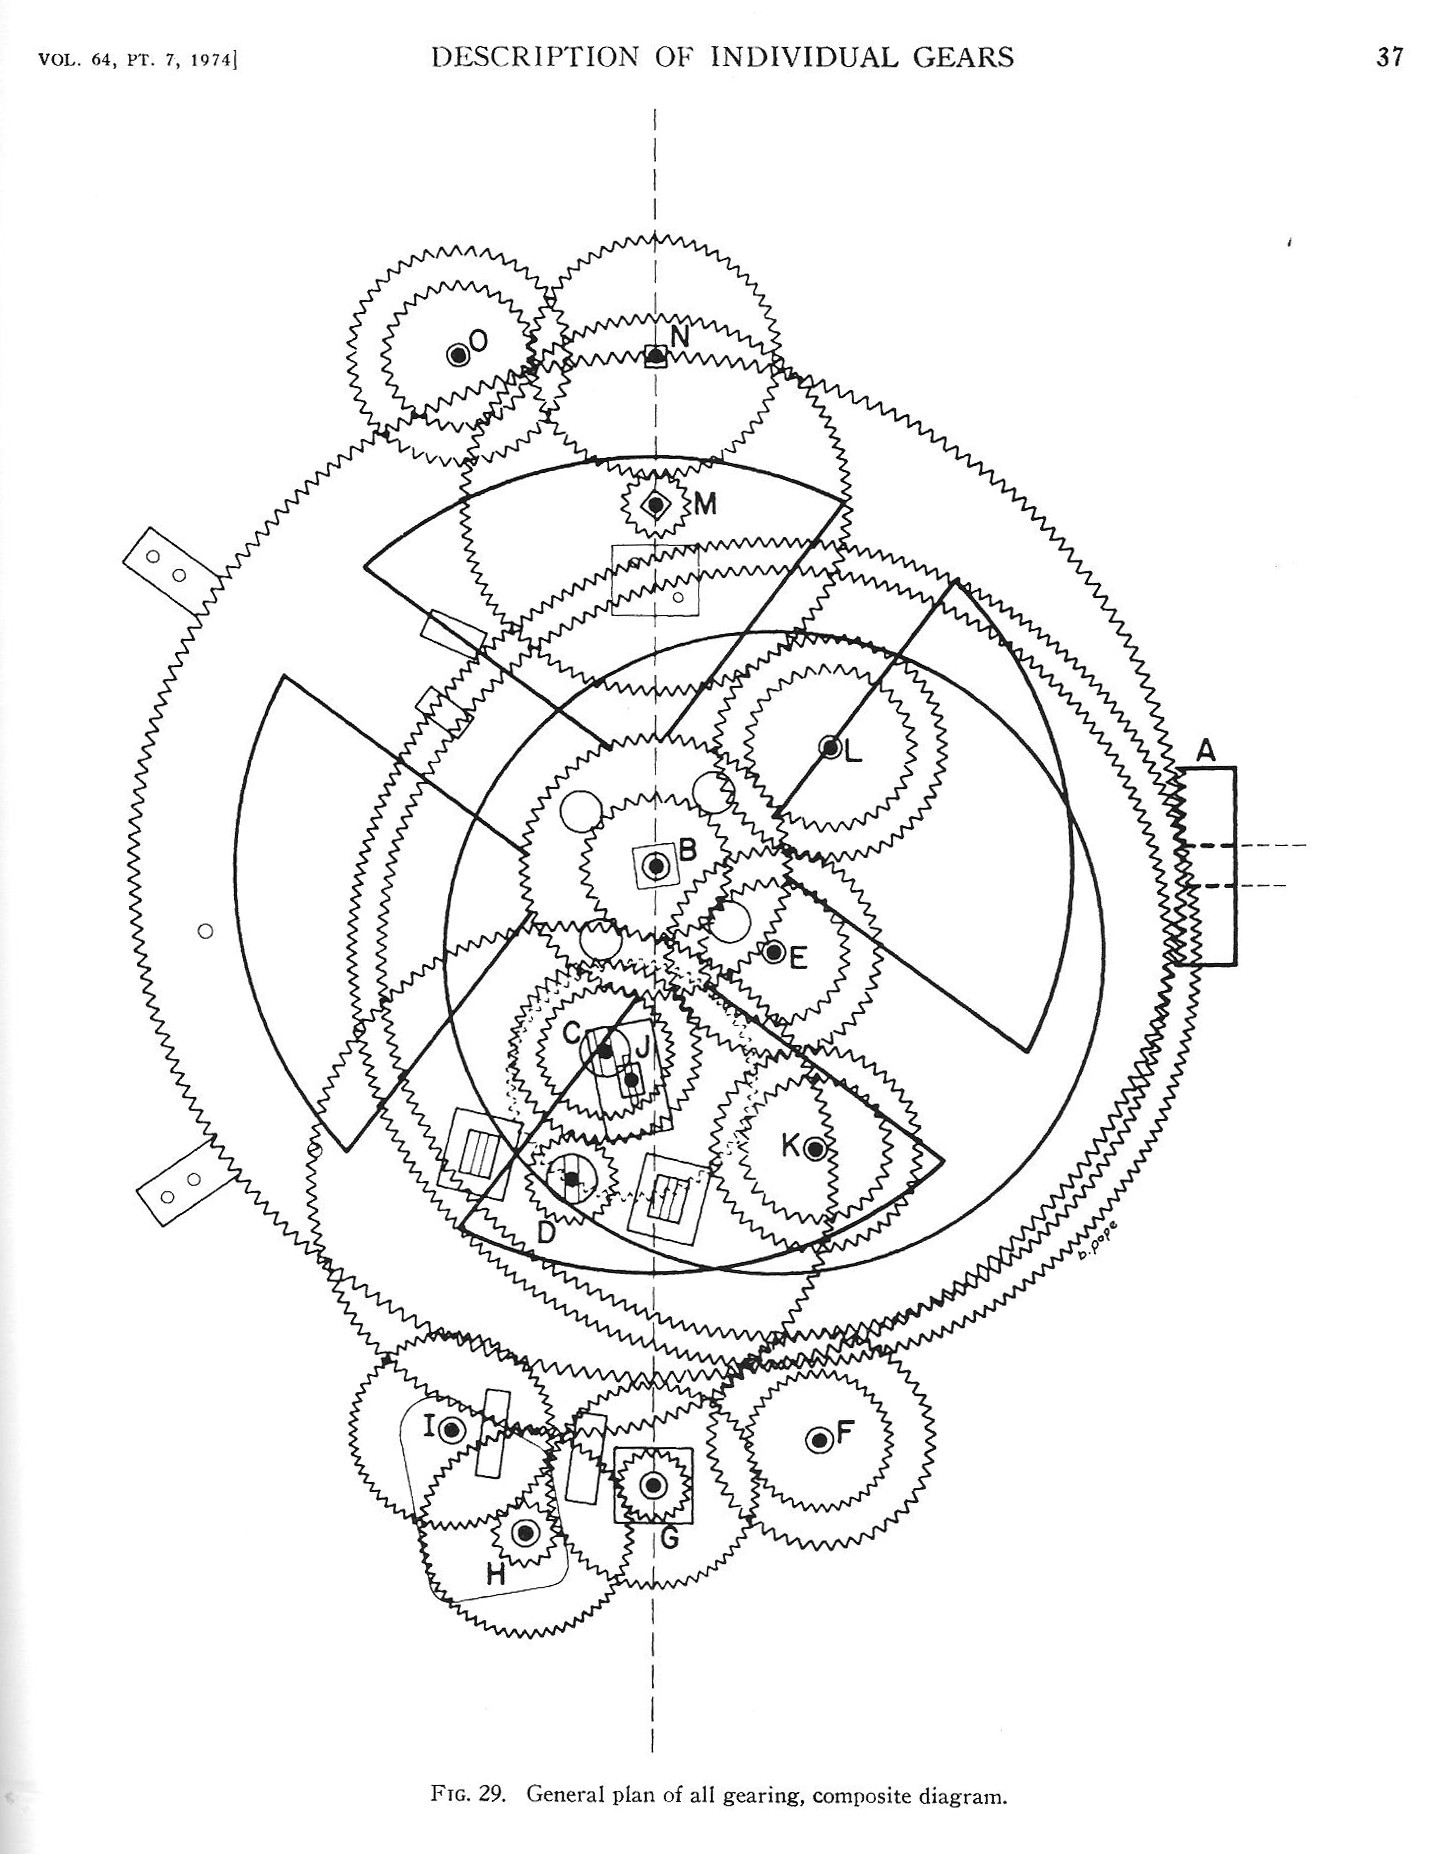 Mechanical Gears Drawing At Free For Personal Use Western Plow Wiring Diagram 1437x1854 The Antikythera Mechanism Hackaday